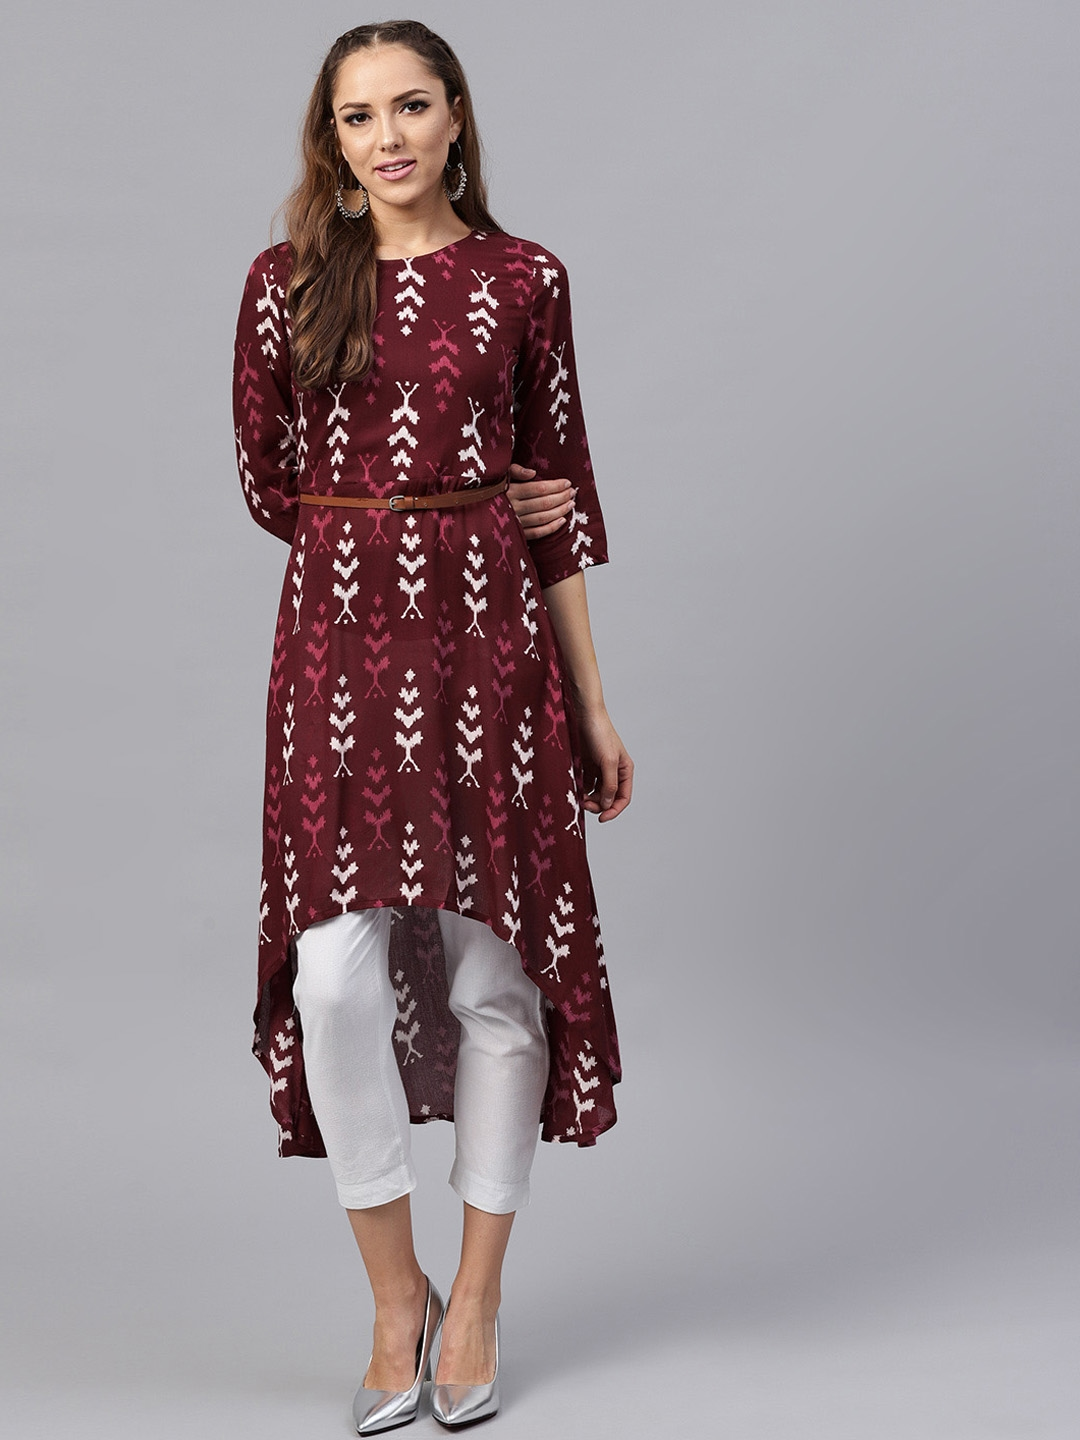 ffe43d0156 Buy SASSAFRAS Women Maroon & Off White Ikat Print High Low A Line ...